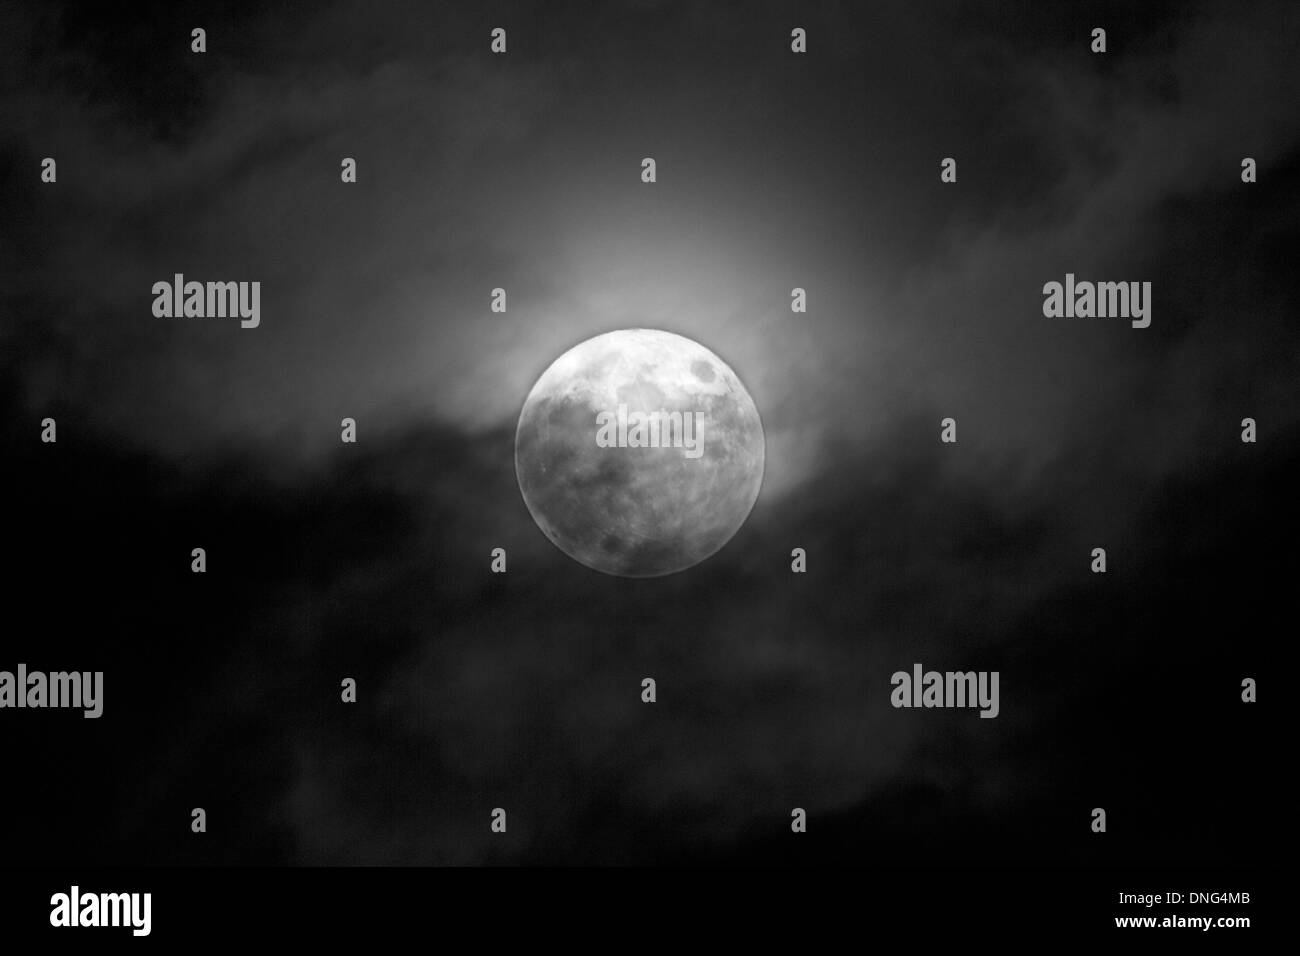 Full Moon is a sky with clouds - Stock Image